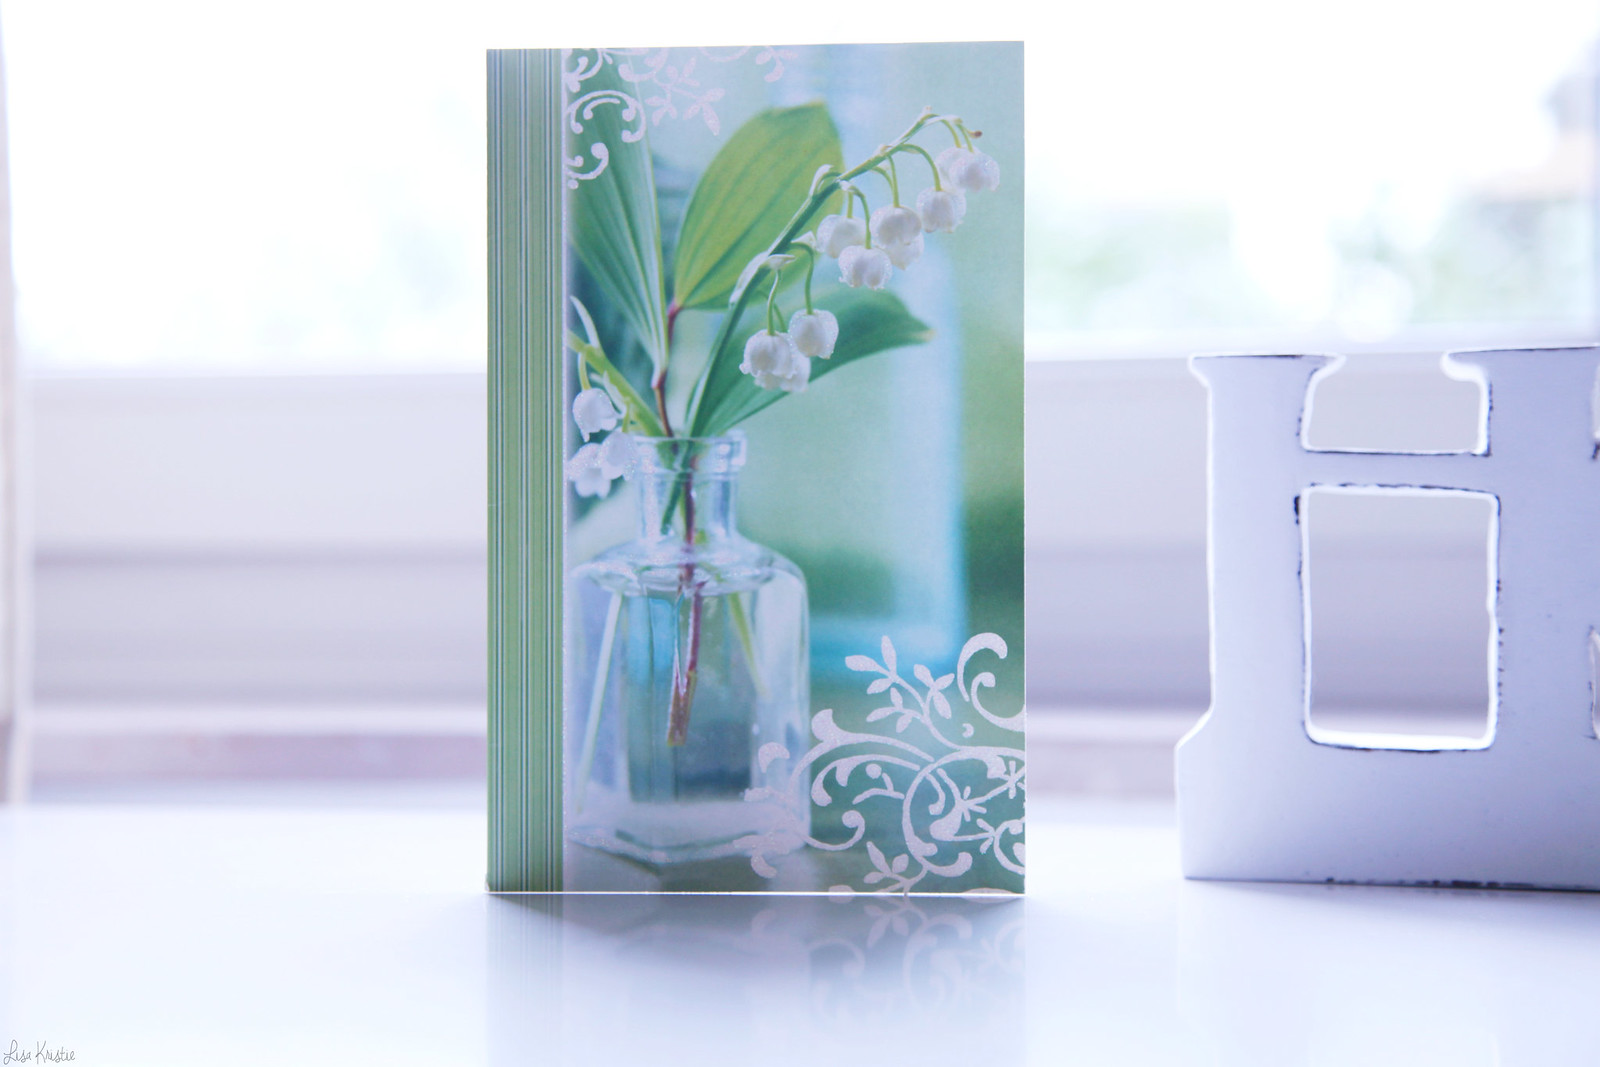 Lily of the valley wish card may 1st first belgium france holiday tradition